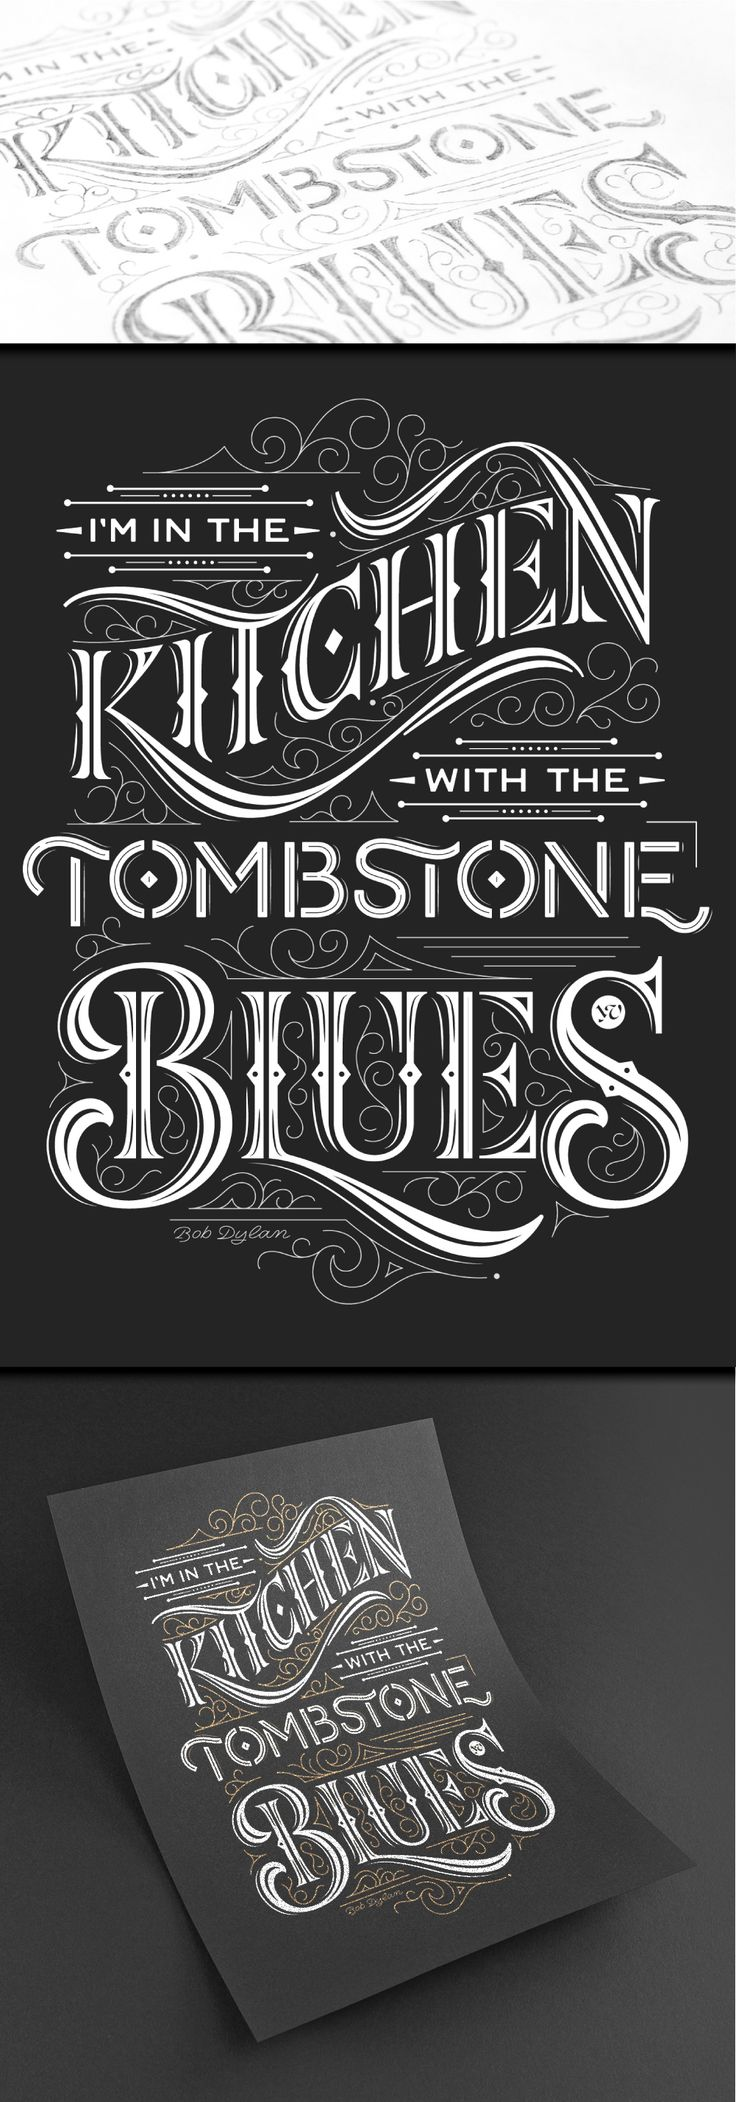 Tombstone Blues on Behance